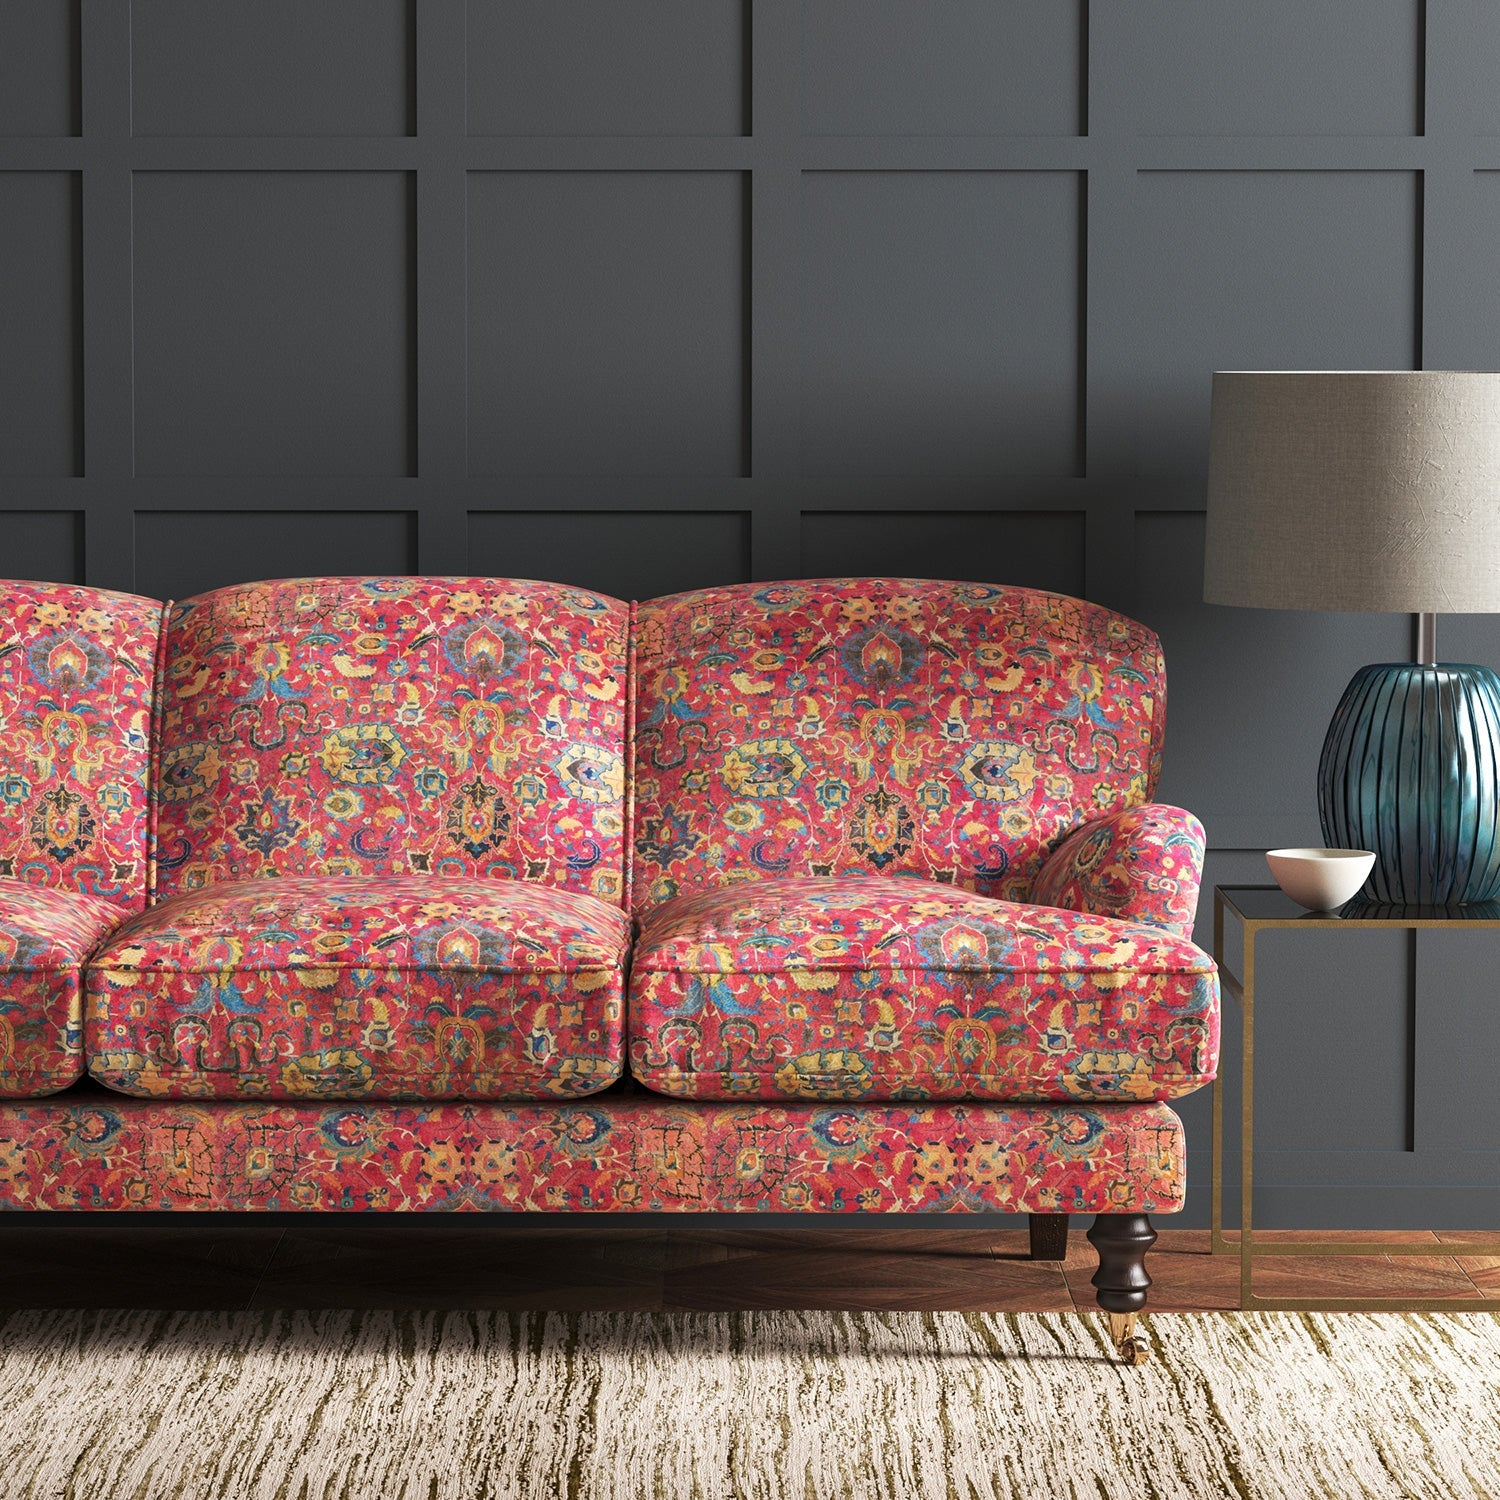 Velvet sofa upholstered in a pink and multicoloured velvet fabric with carpet design and stain resistant finish